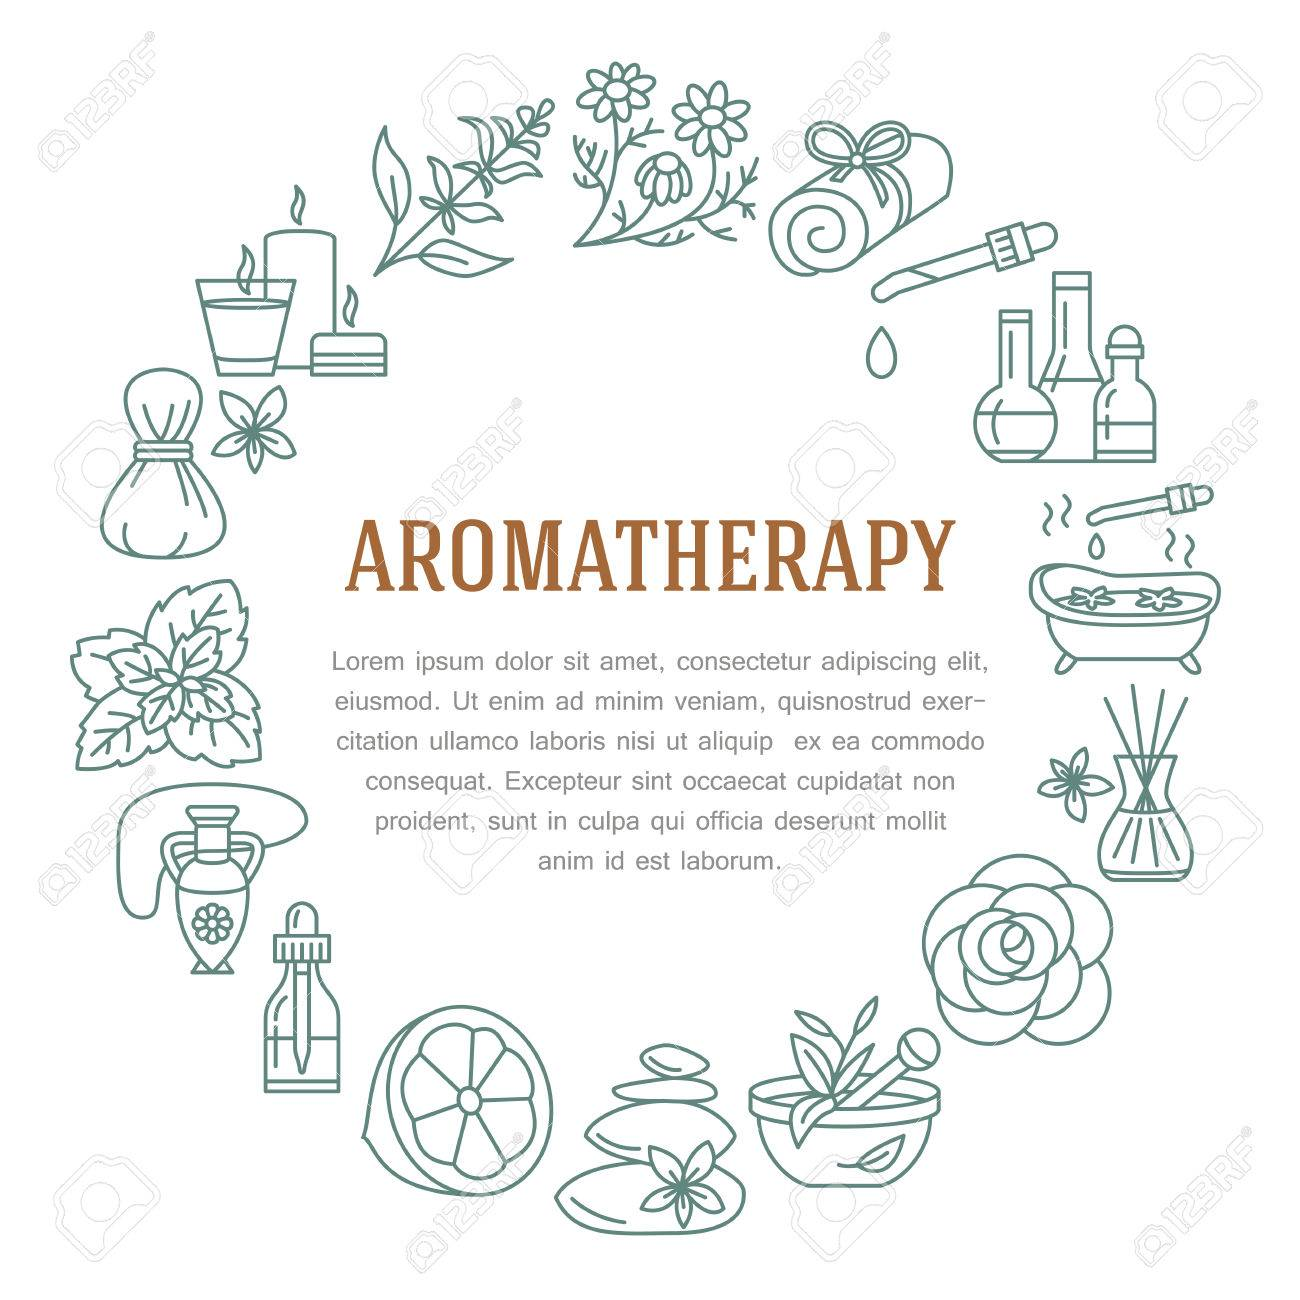 Aromatherapy and essential oils circle template. Vector line illustration of aromatherapy diffuser, oil burner, spa candles, incense sticks, herbal bag massage. Essential oils poster, editable stroke - 66482579